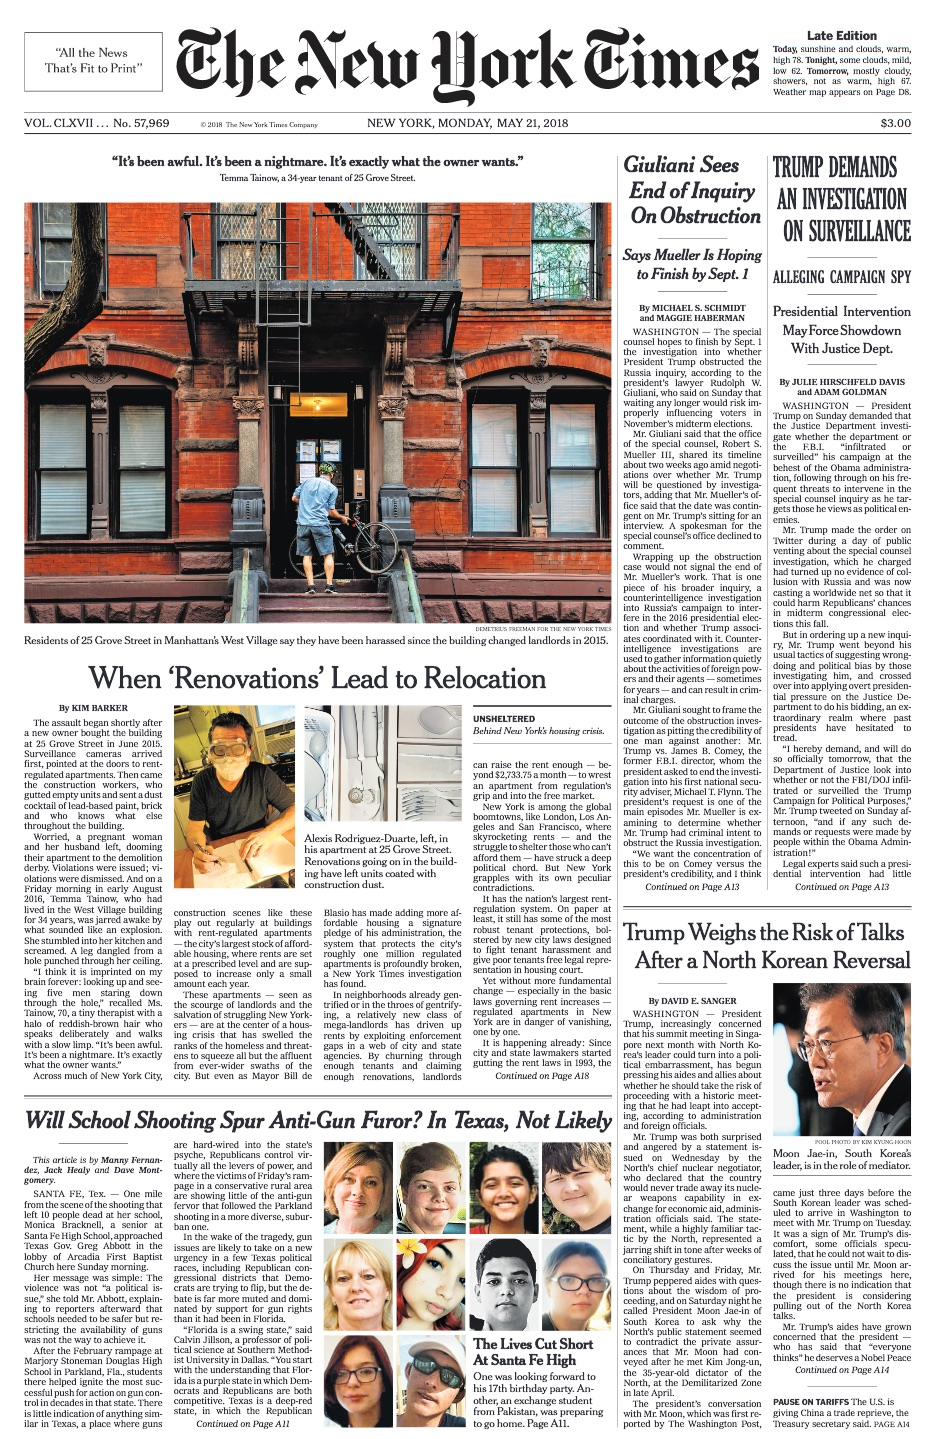 NYT_FrontPage_052118.jpg